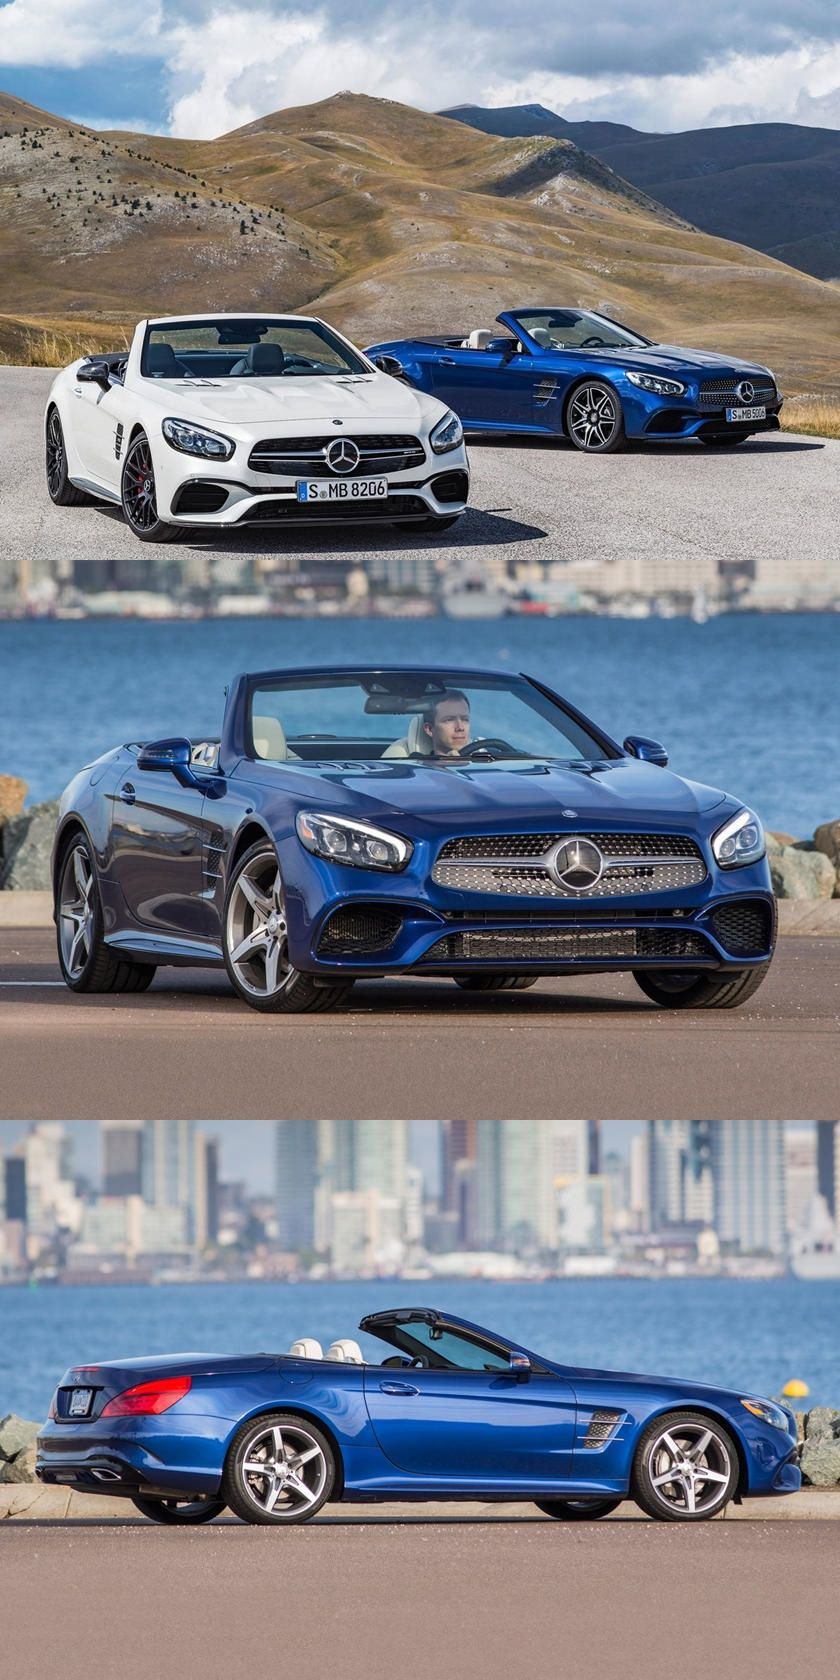 Now Is The Time To Buy A Cpo Mercedes Benz Sl Before The New Model Arrives Get Thousands Off The Old One Mercedes Benz Benz Mercedes